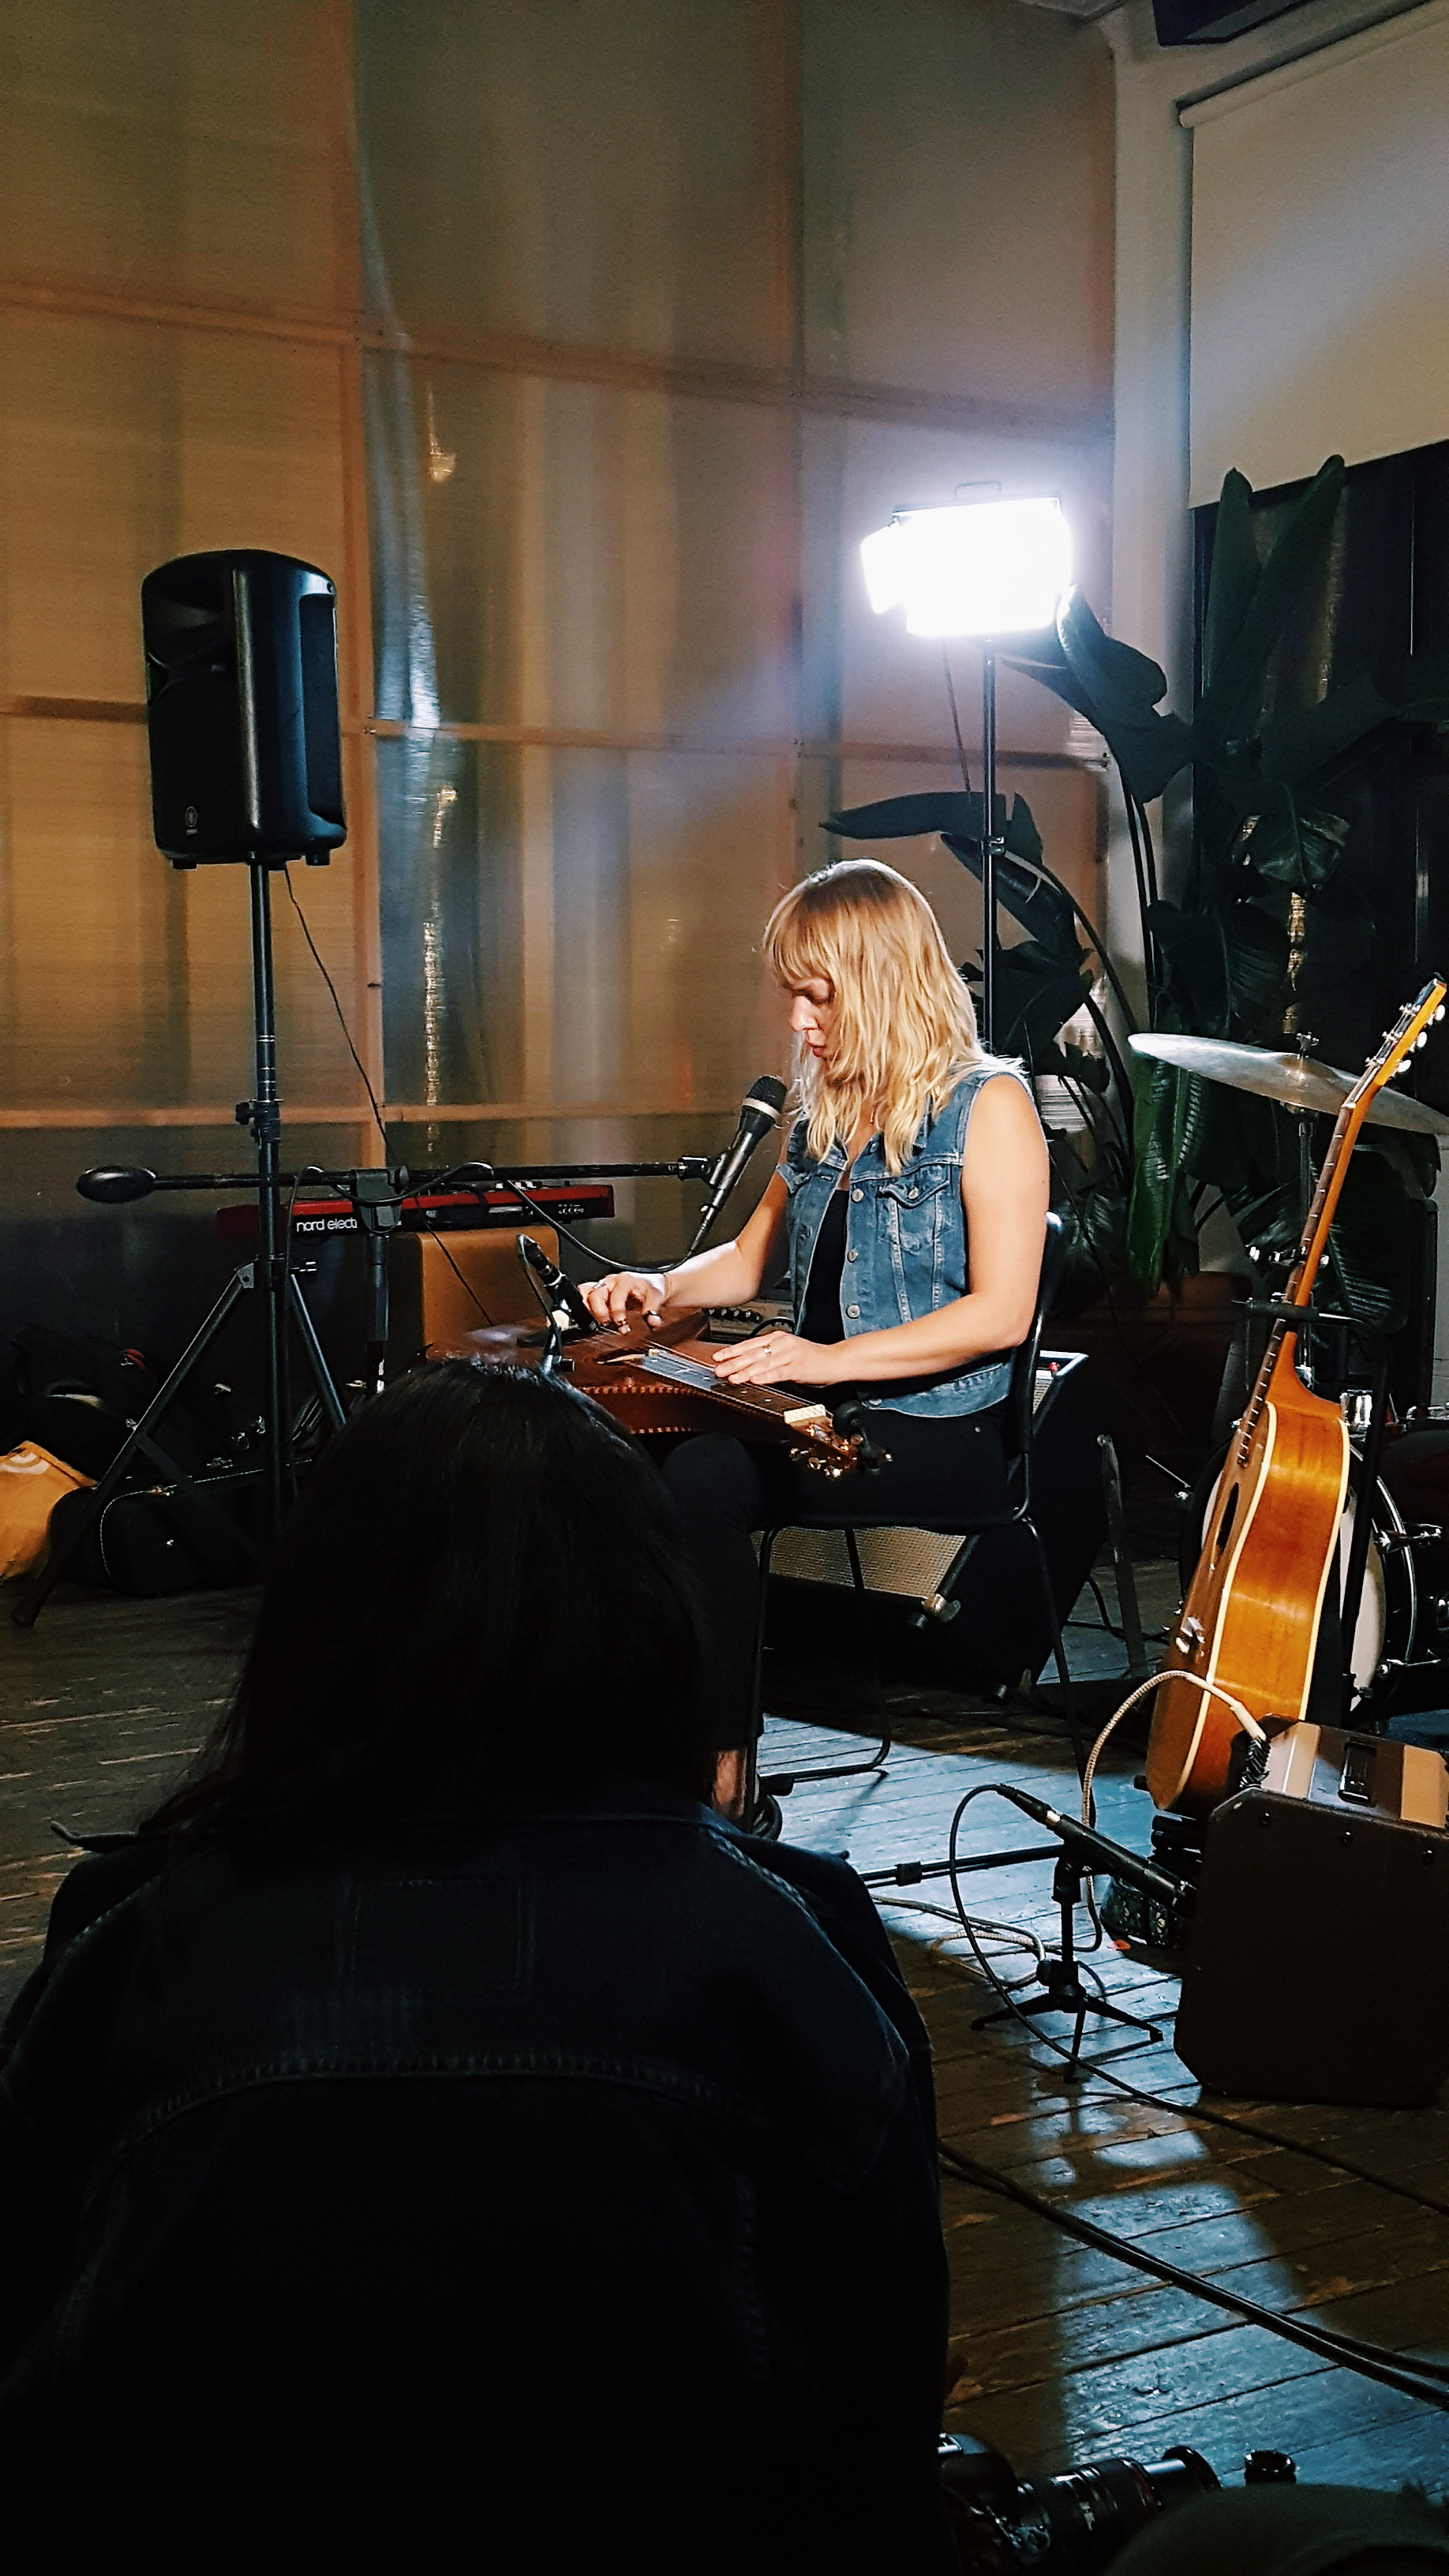 Lauren Calve @ So Far Sounds NYC which provides intimate music events with local acts in 274 cities around the world.